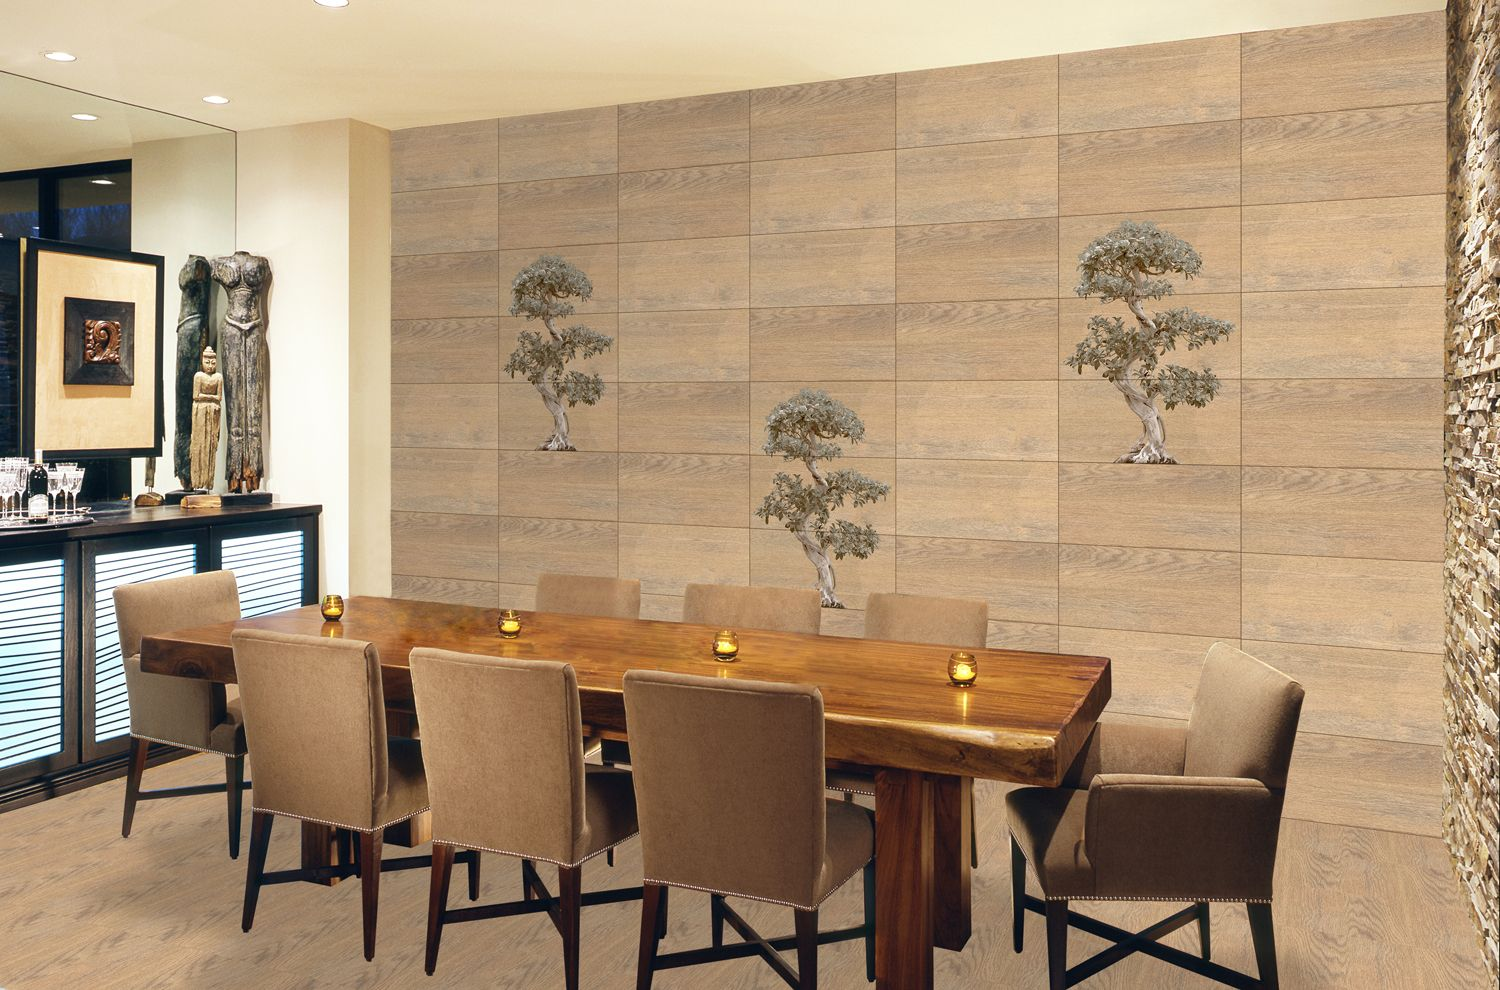 Odh Banyan Tree Hl Odw Dew Tiles For Dining Room Unique Dining Room Dining Room Walls Dining Room Wall Decor